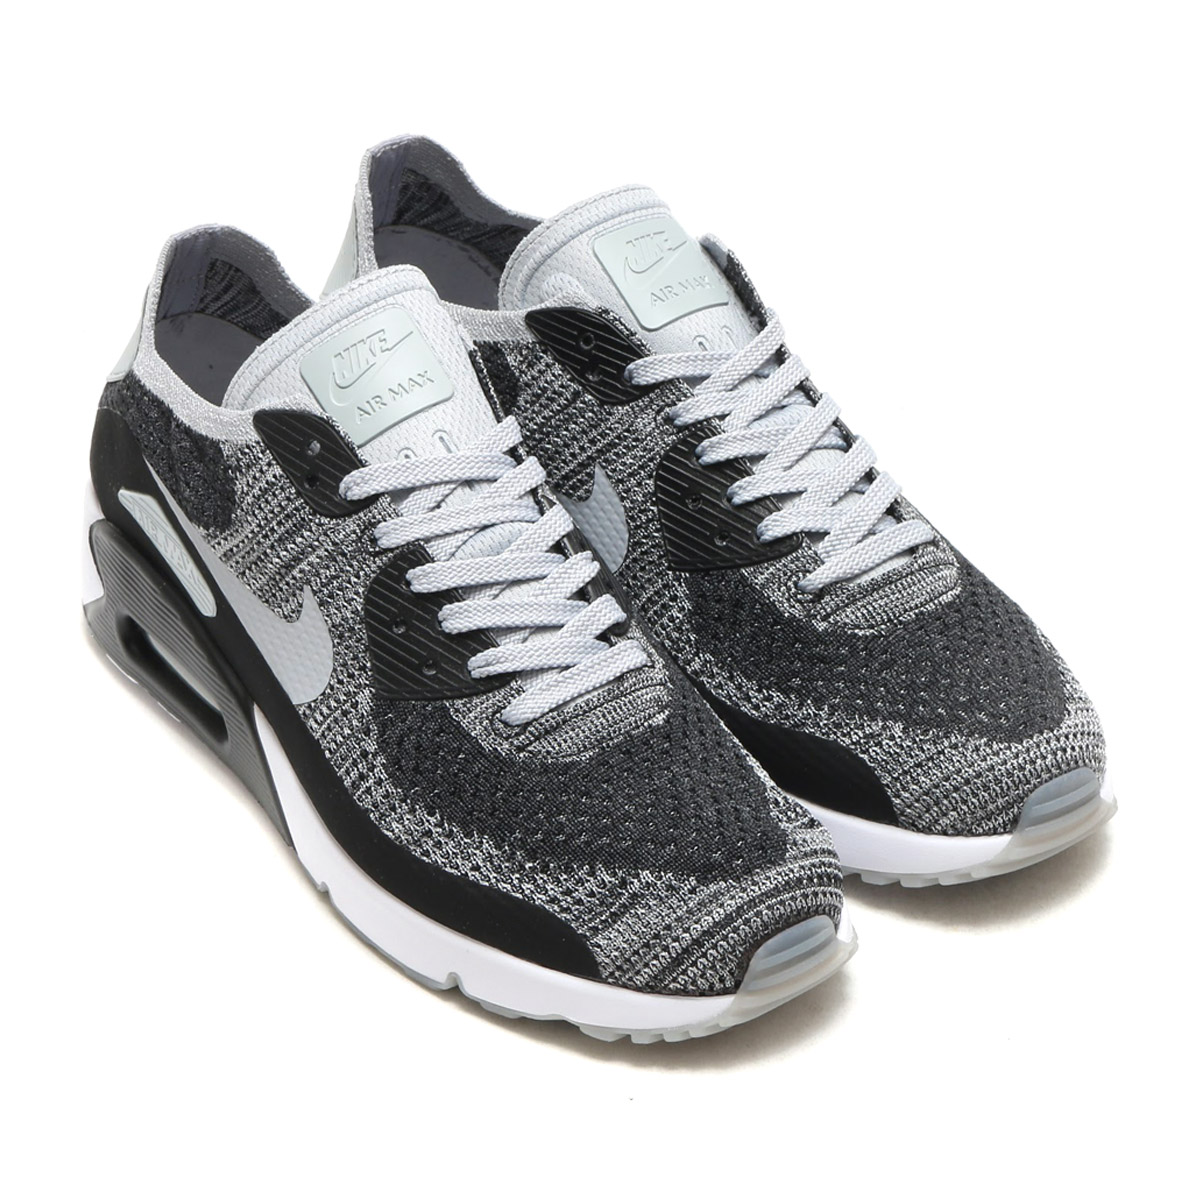 best website 529c2 f46e2 It renovates a design and expresses the hommage to Air Max icon. Is  distinguished for the form mid sole which adopt lightness and Flyknit upper  superior in ...